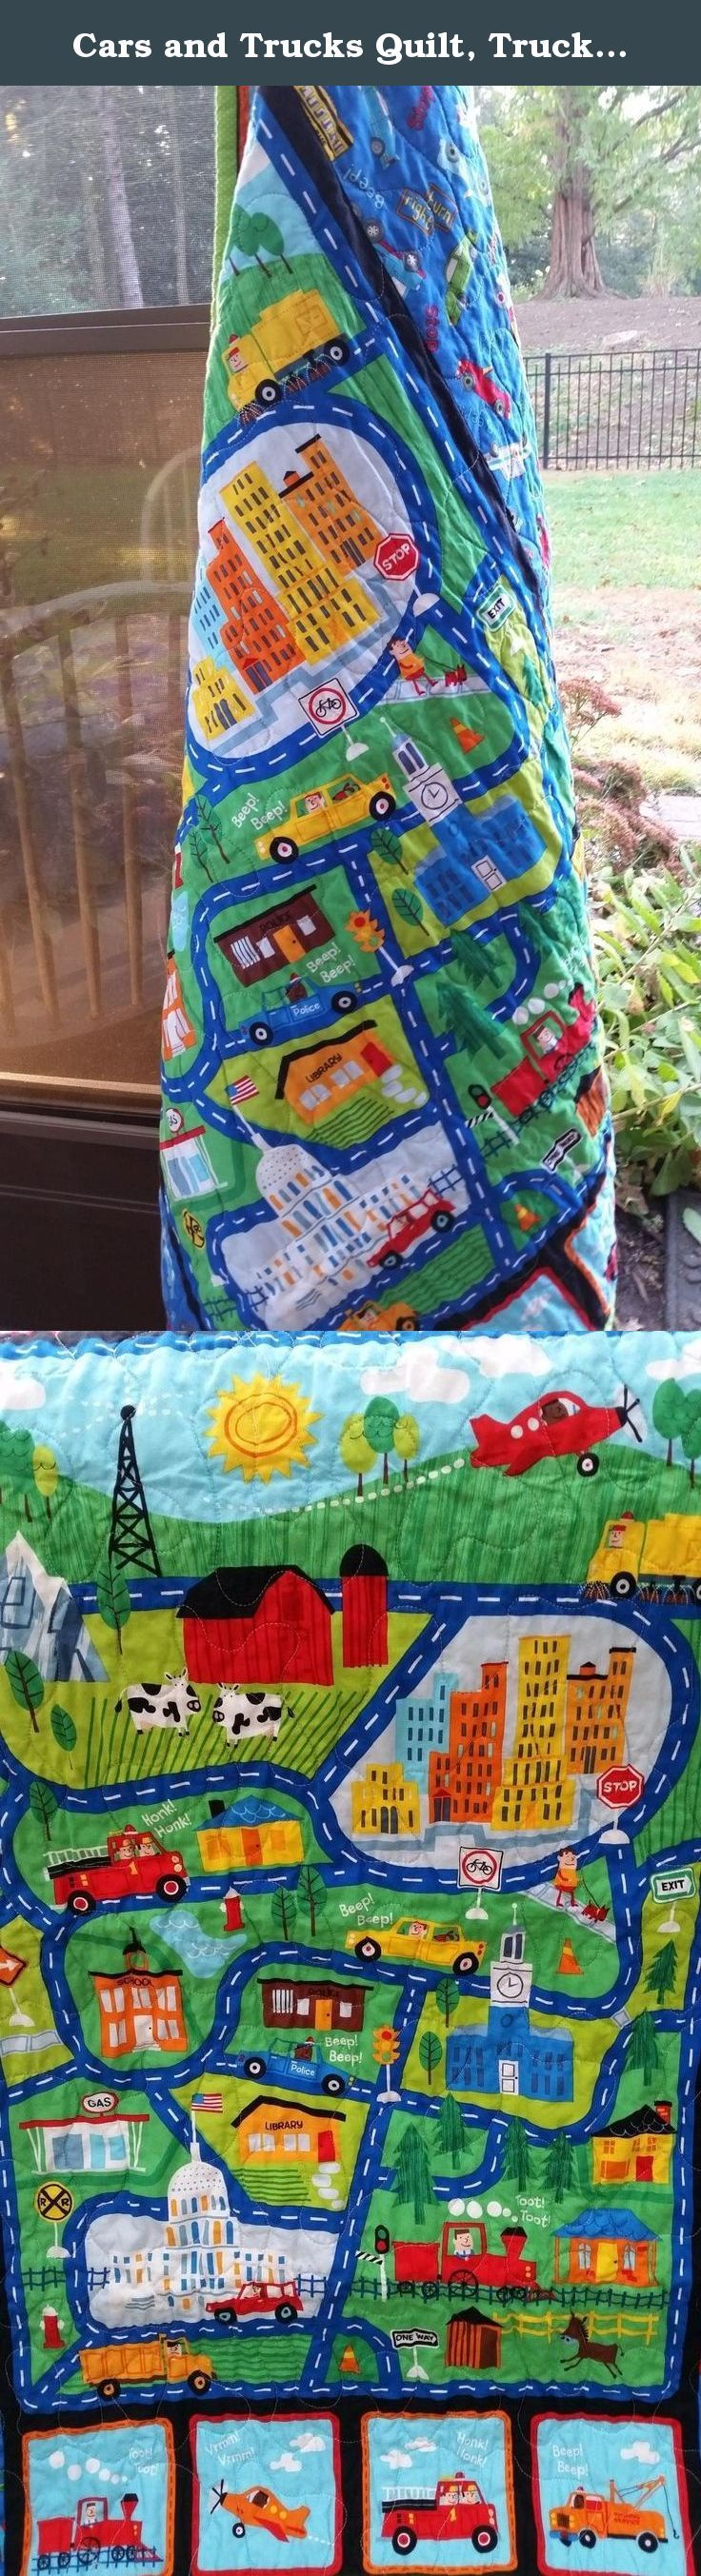 Cars and Trucks Quilt, Trucks and Cars Playmat, Trucks Crib Quilt, Vehicle Nursery, Vehicle Crib, Transportation Crib, Boy Crib Bedding, Airplane, Train, Vehicles, Car Toddler Birthday Present. THIS QUILT IS READY TO SEND AND I ONLY HAVE ONE SO WHEN IT IS SOLD - it is gone forever. This quilt was made in my home studio in Hershey, PA where you can smell chocolate being made every day. Perhaps that is why they call it the sweetest place on Earth. While this quilt will not look and/or taste...